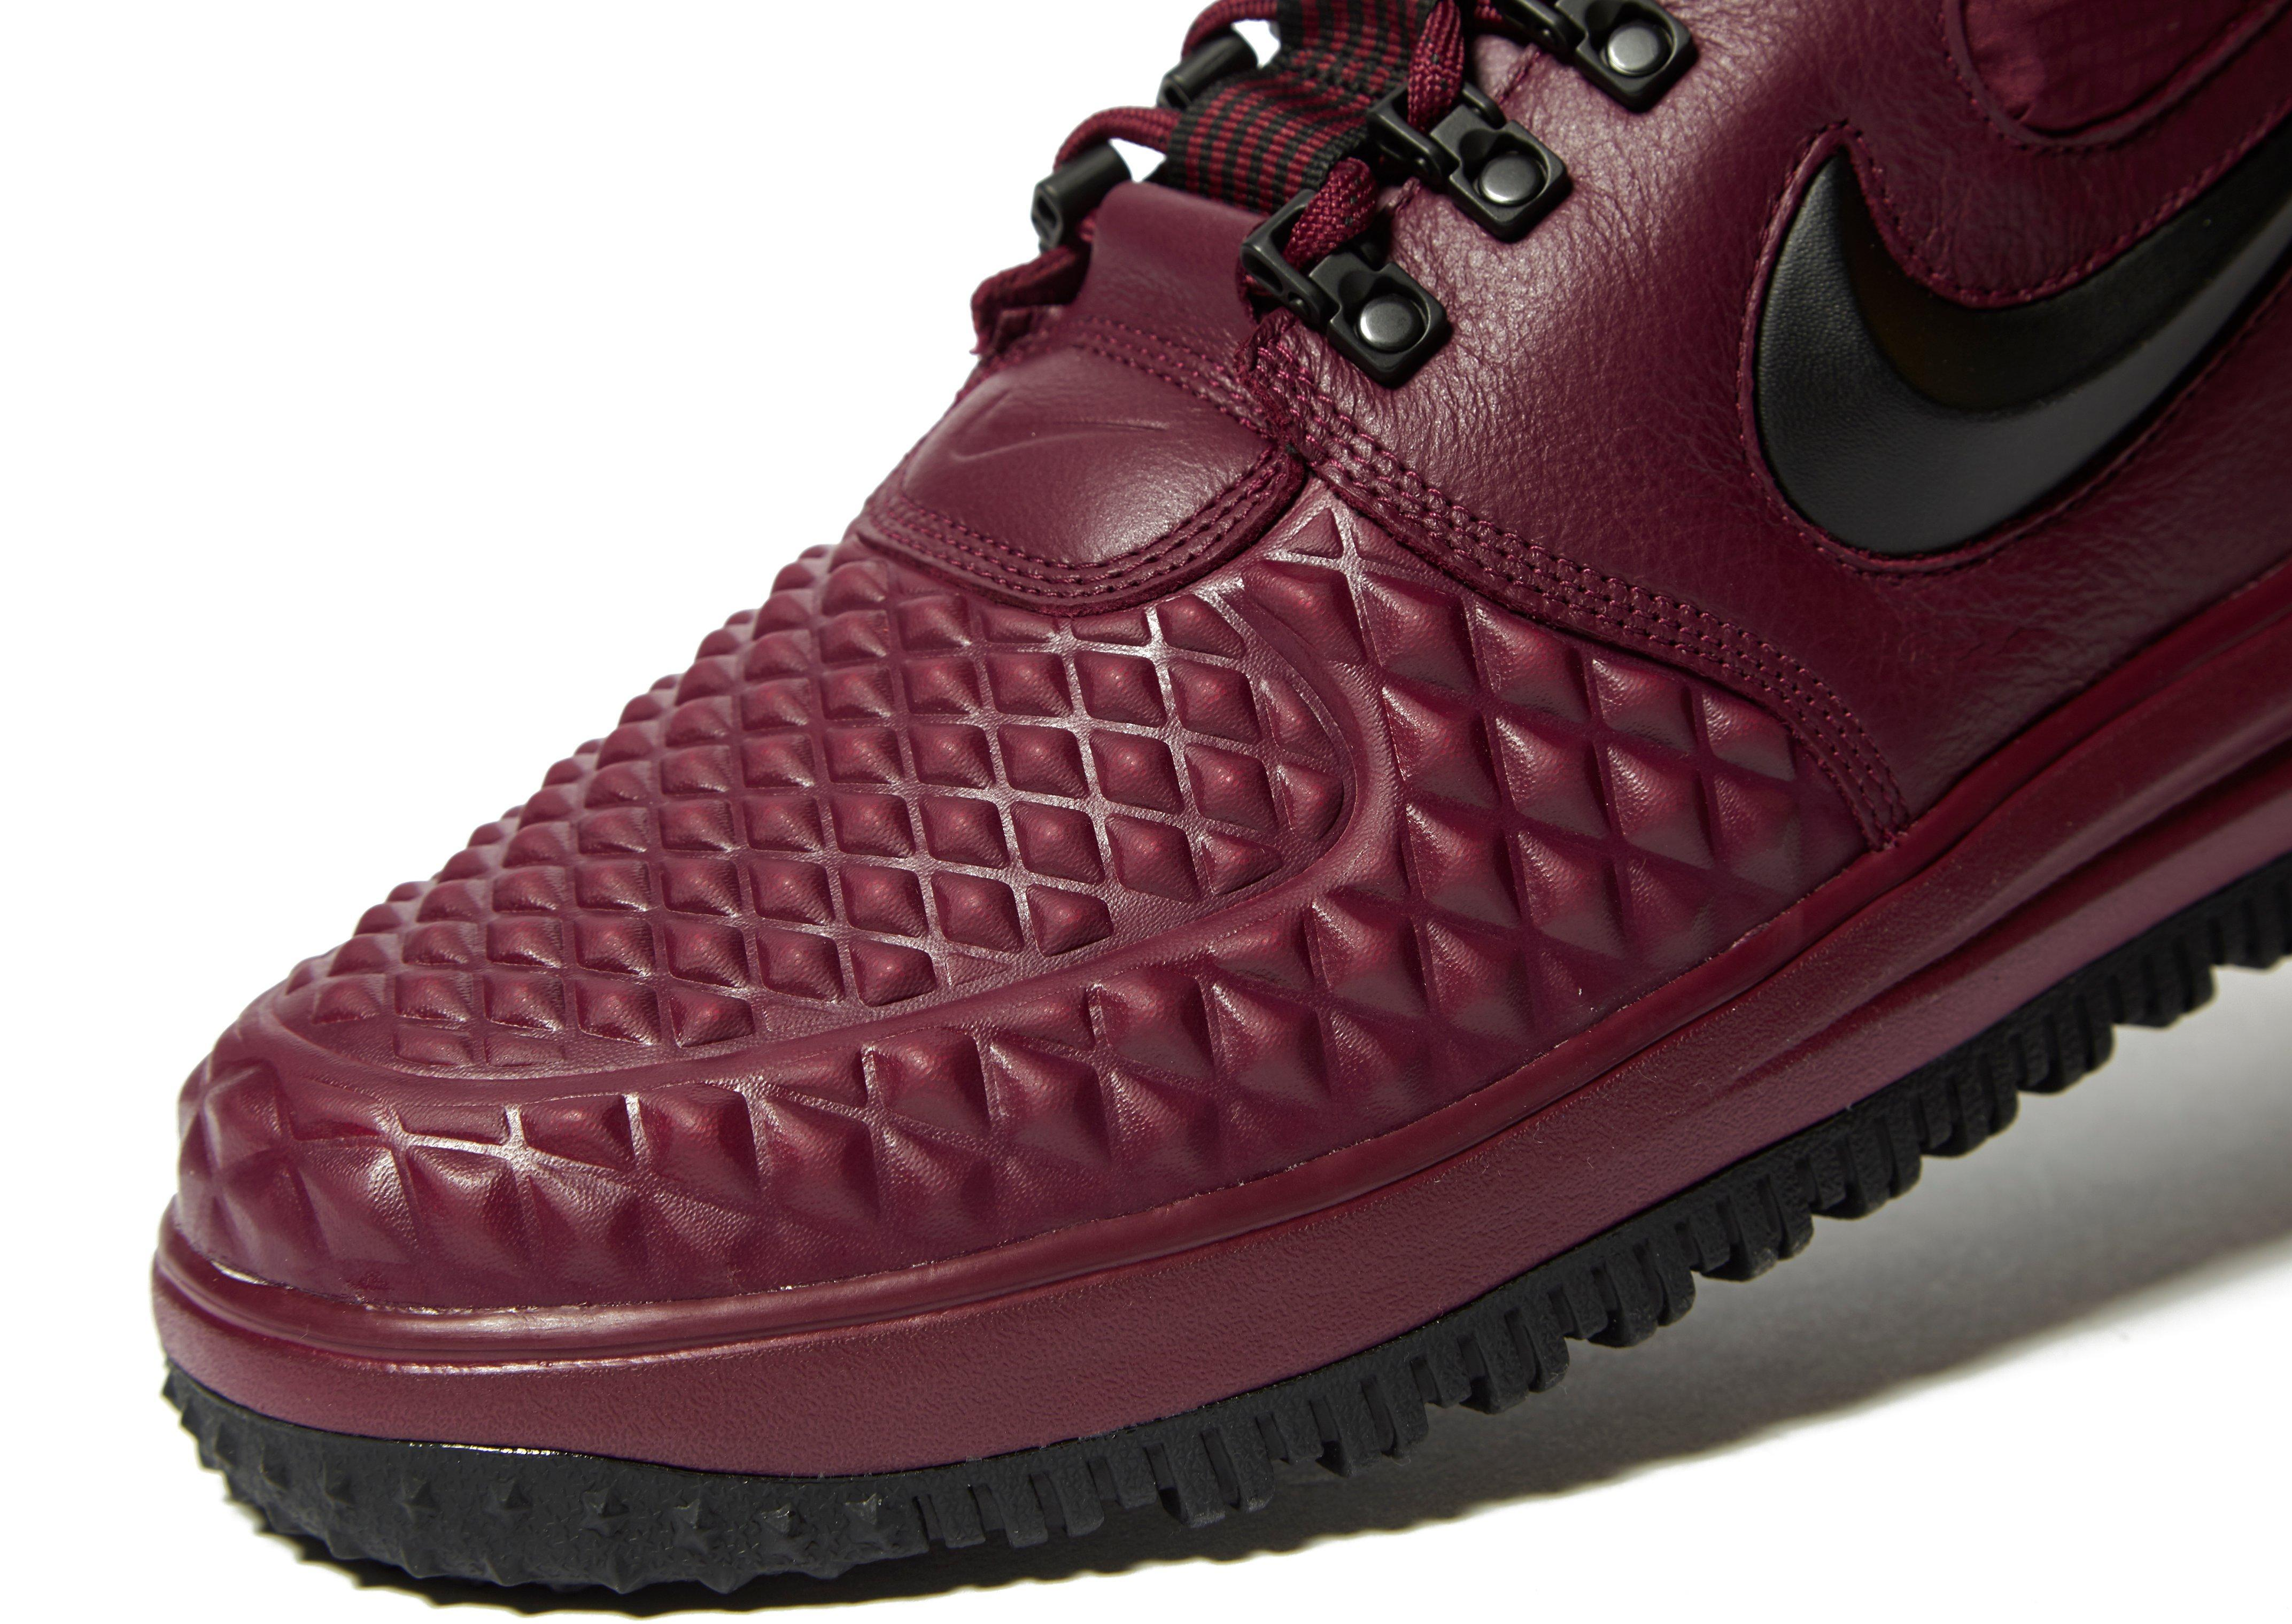 lyst nike lunar force 1 duckboot for men. Black Bedroom Furniture Sets. Home Design Ideas